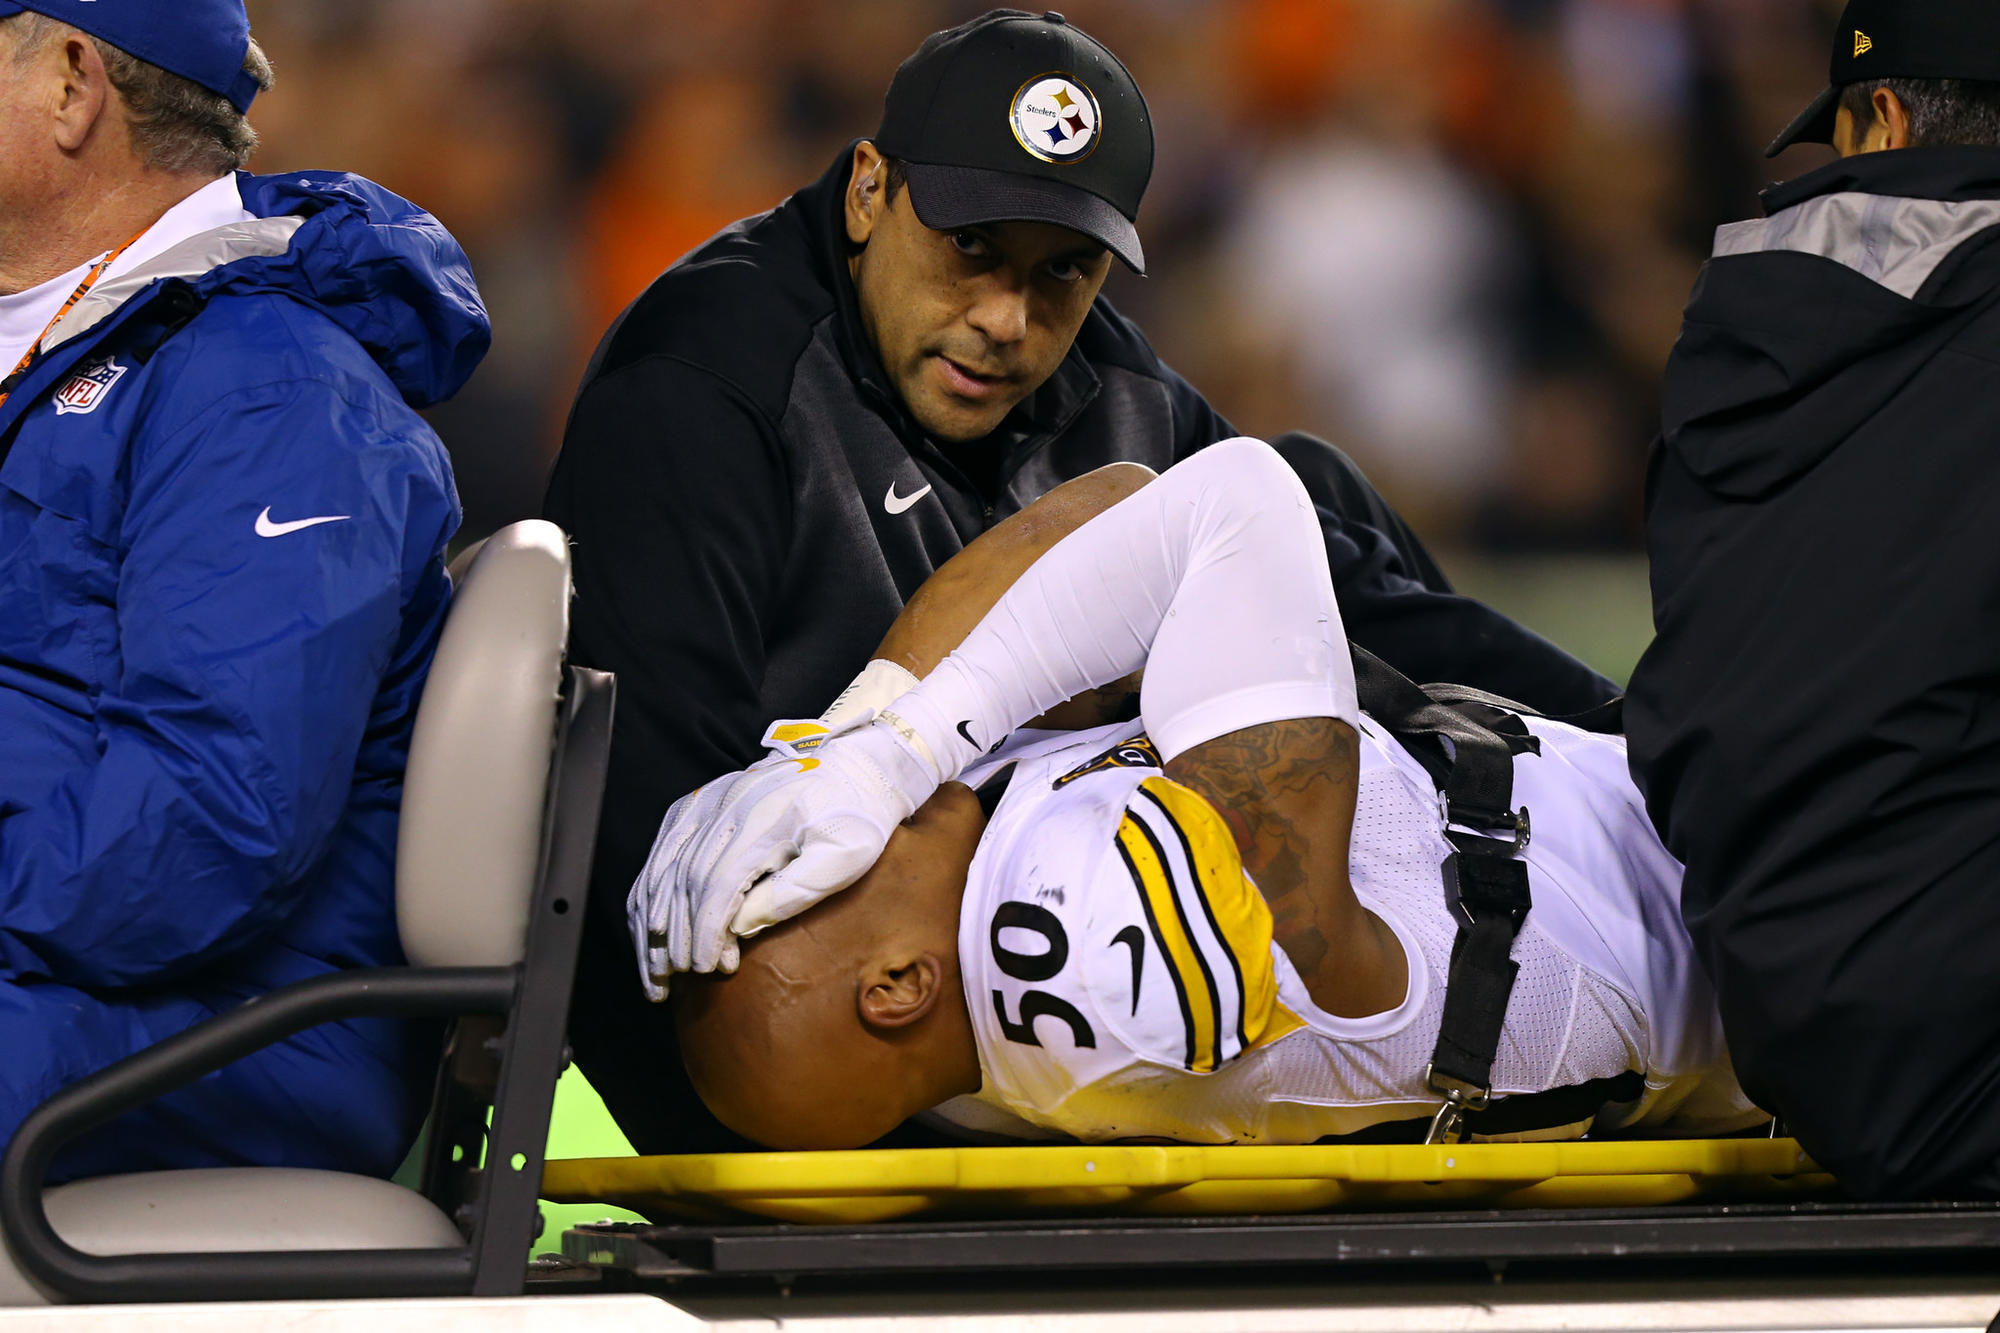 Lack of news on Ryan Shazier is disconcerting The San Diego